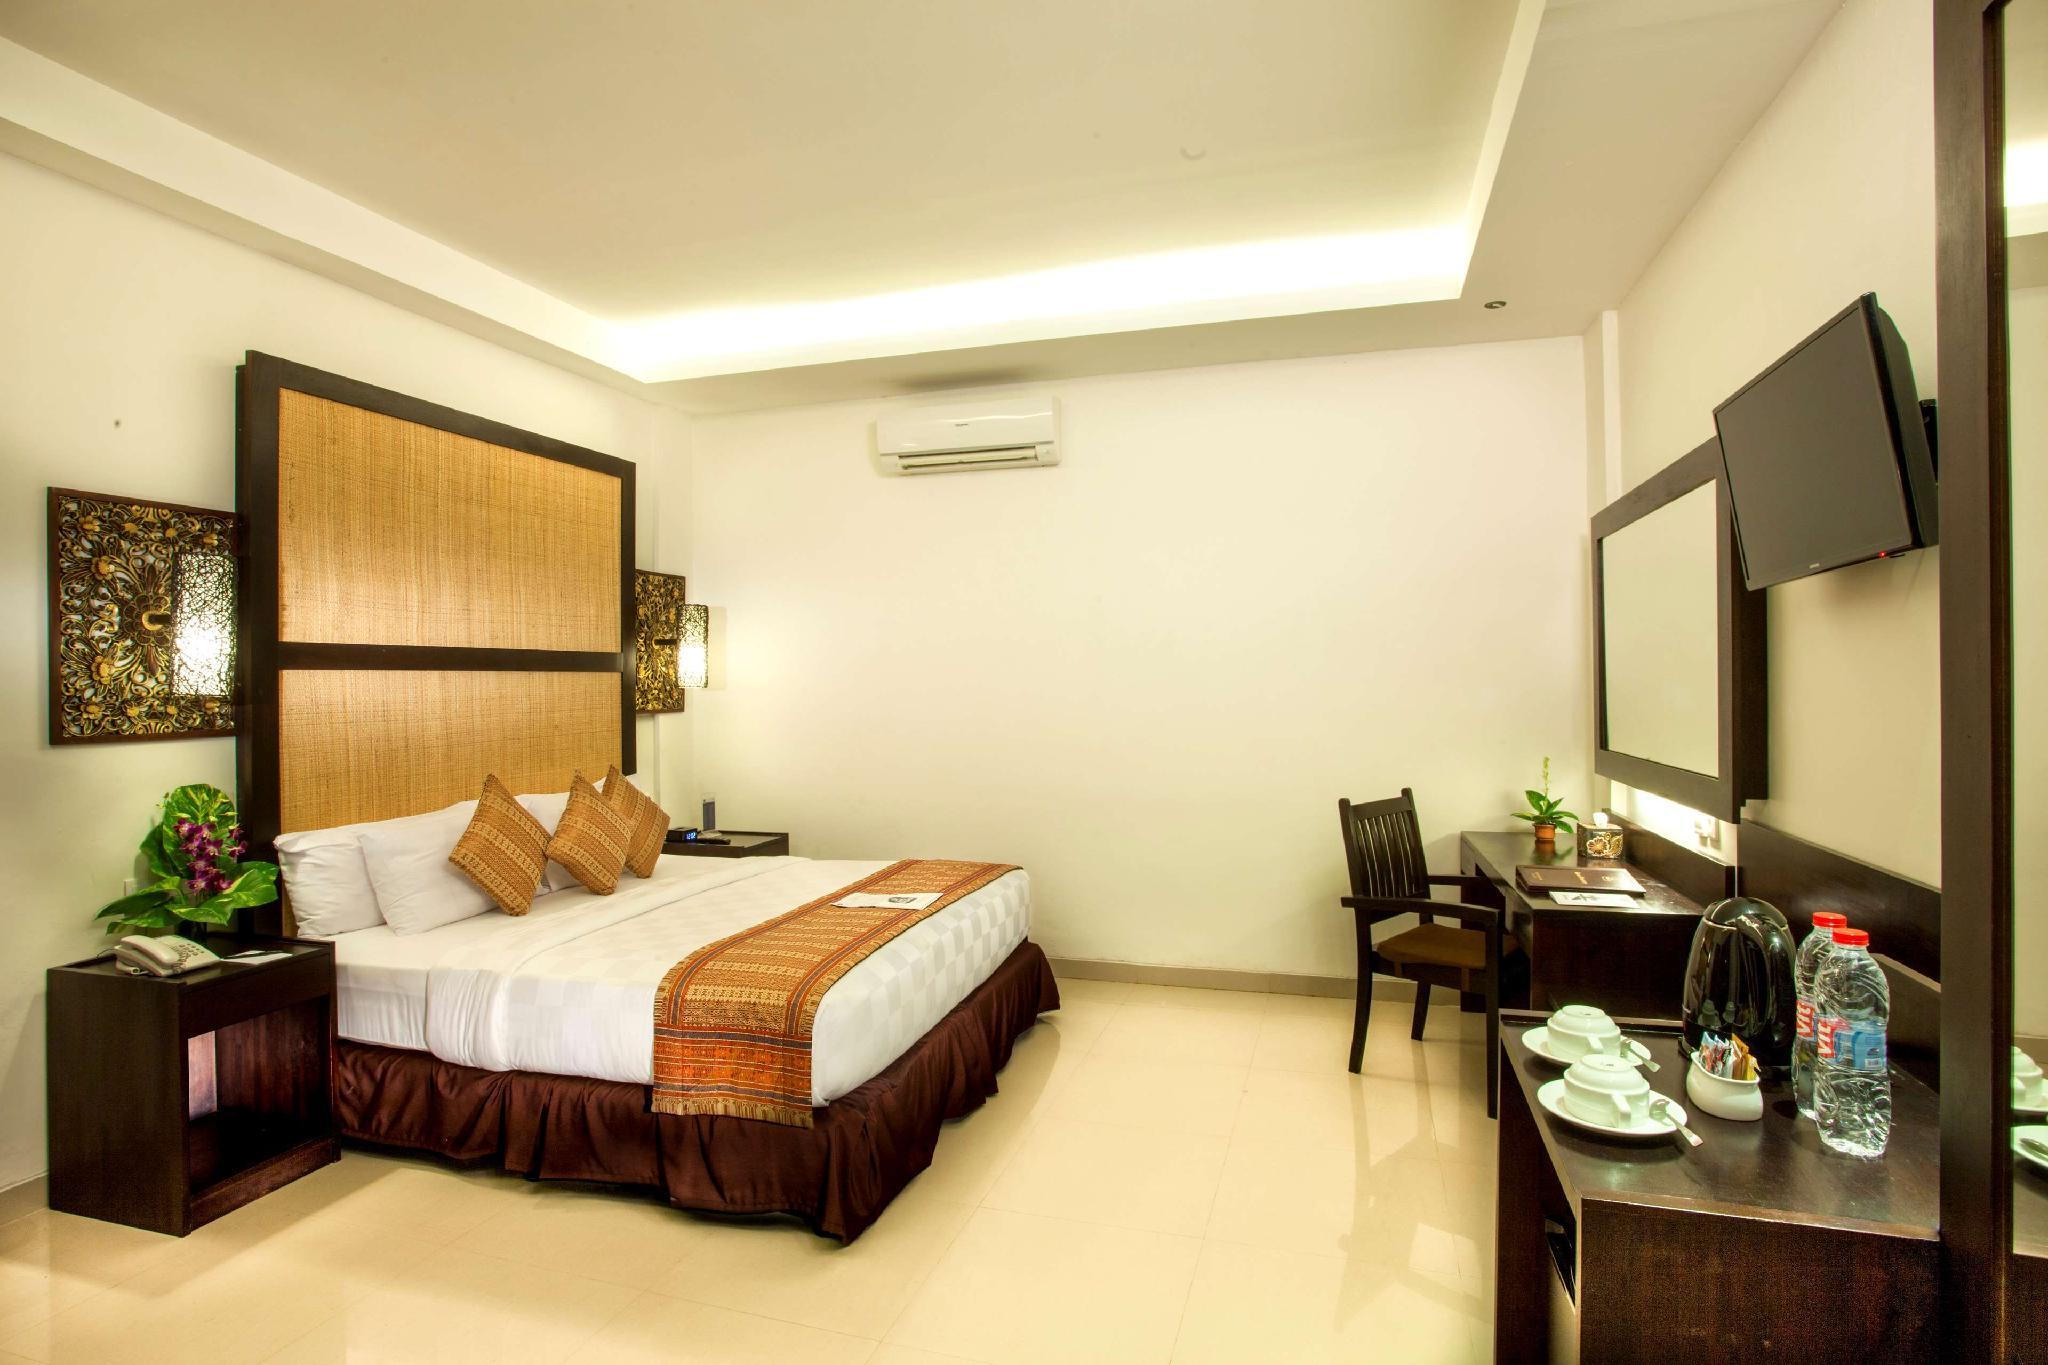 Kamar Deluxe dengan Kasur Queen – Bebas Asap Rokok (1 Queen Bed Deluxe Room Non-Smoking)